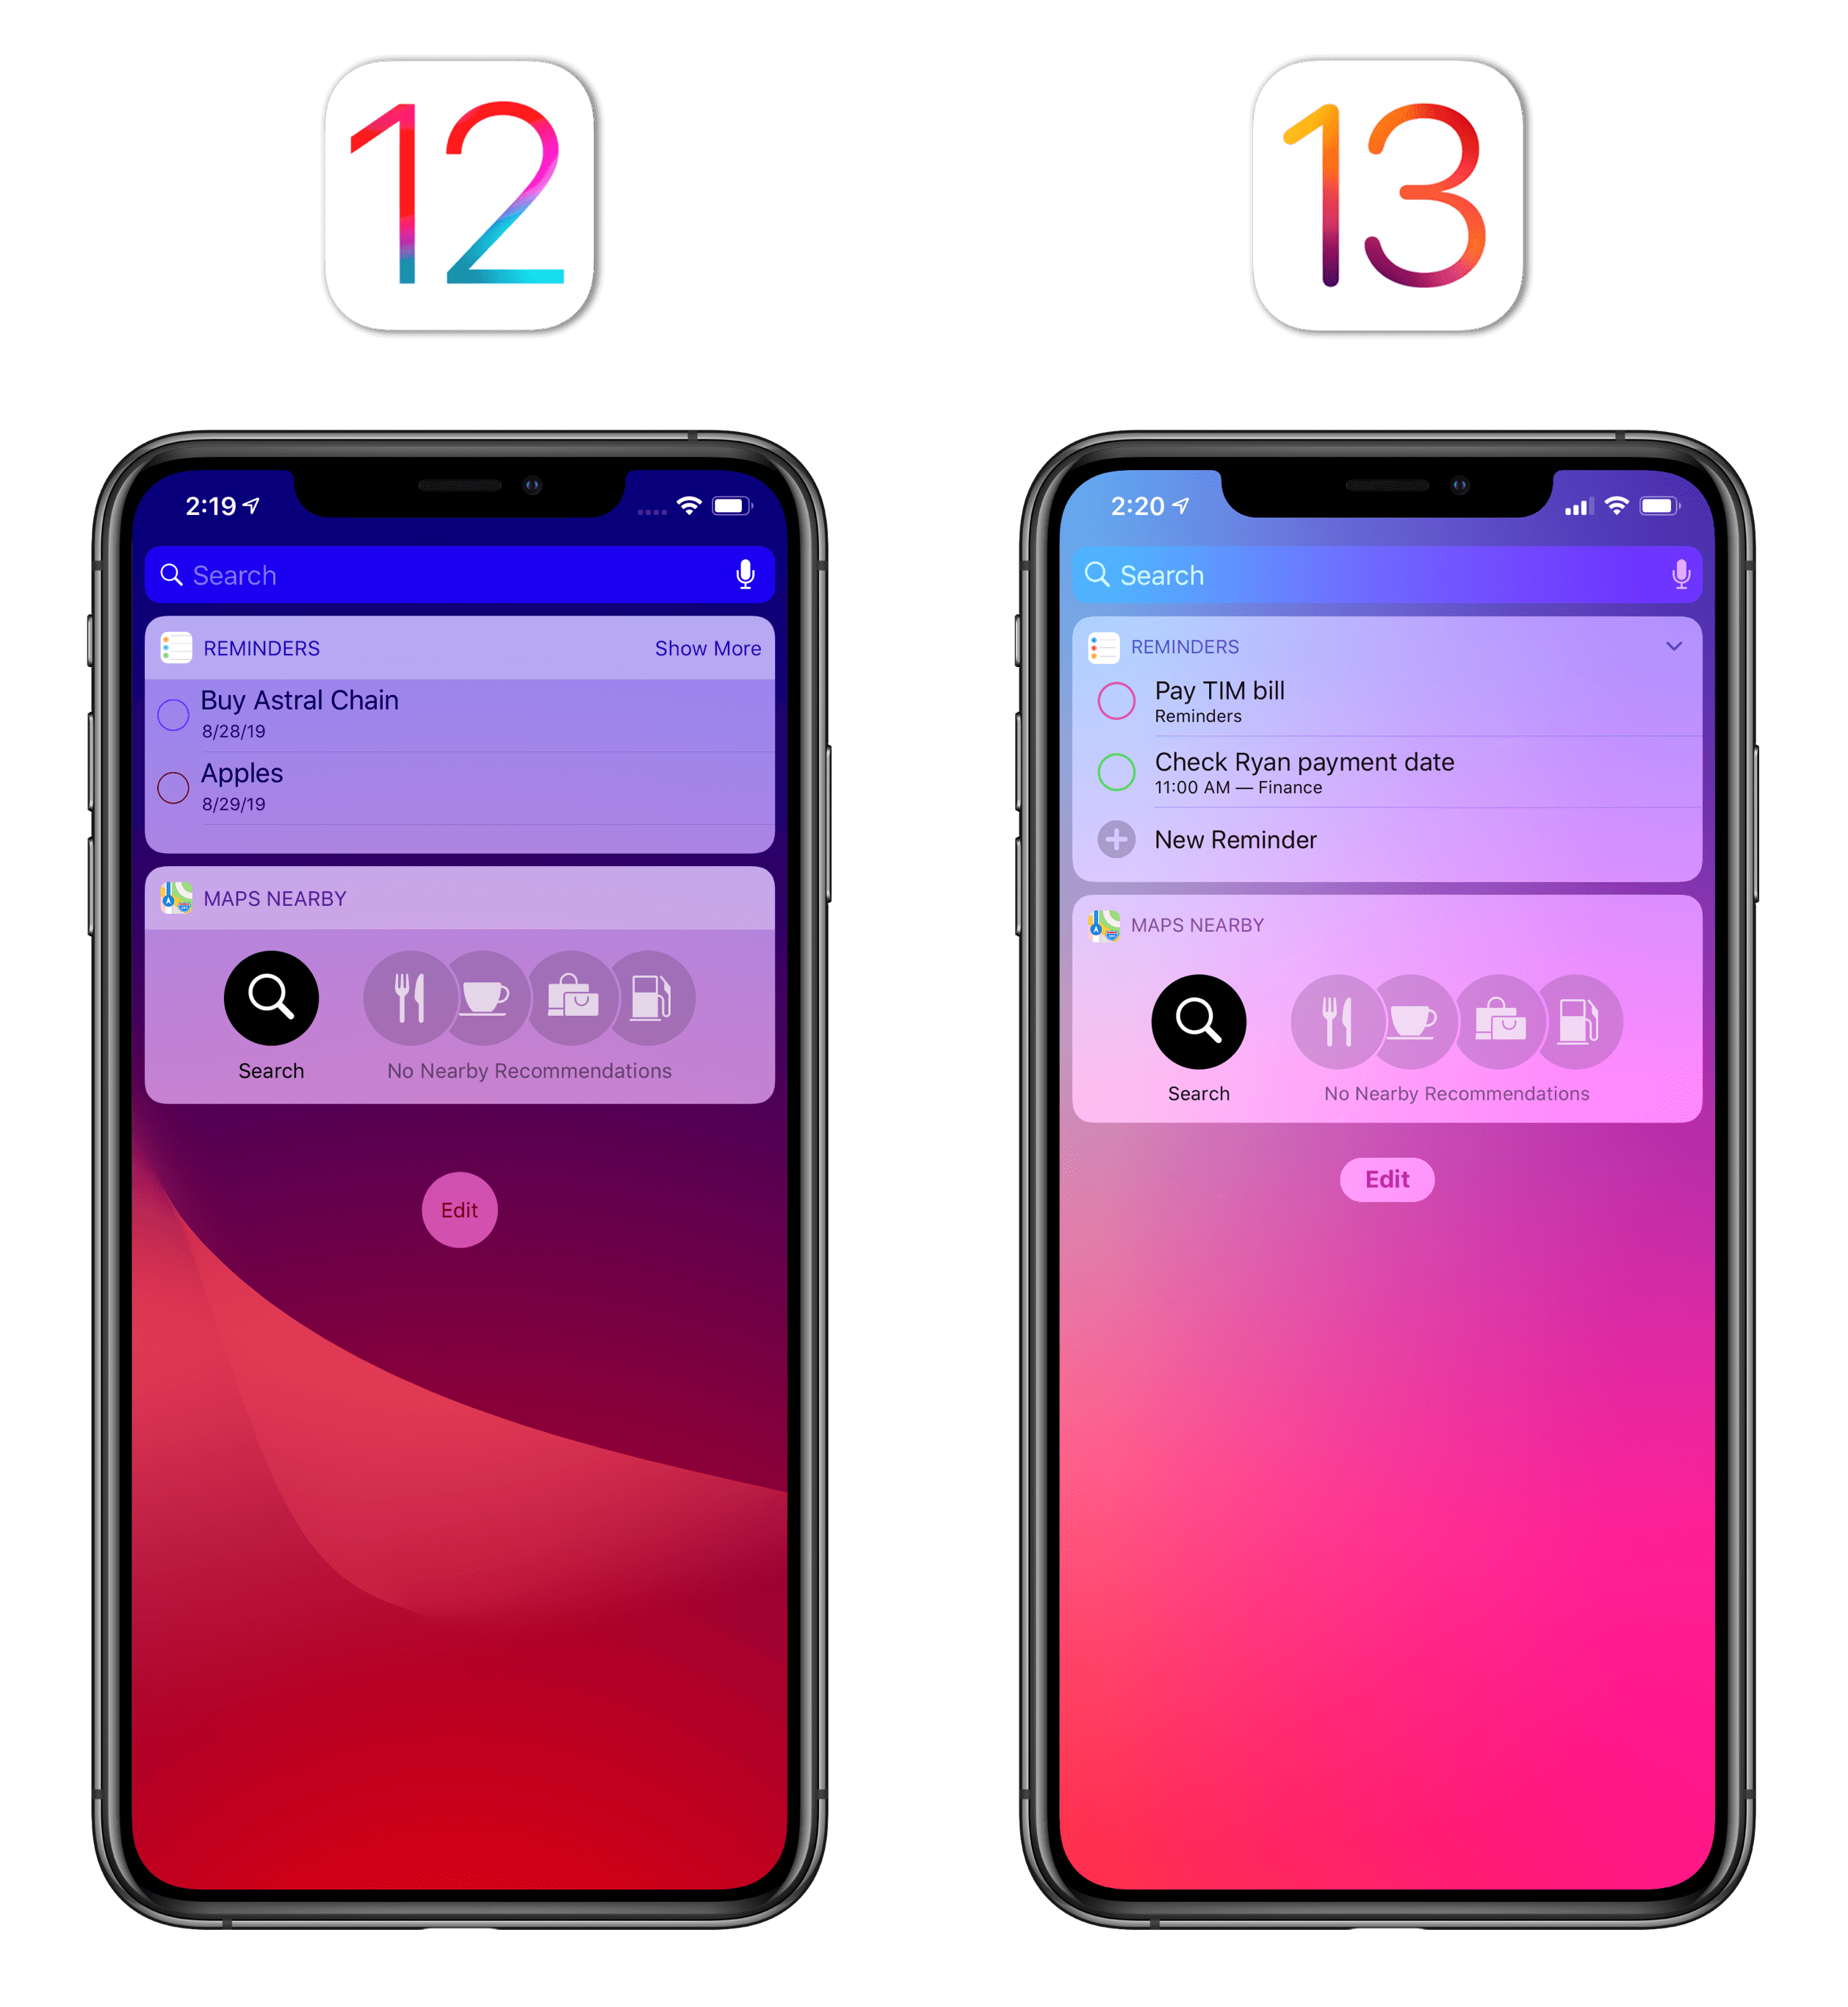 The refreshed look for widgets in iOS 13.